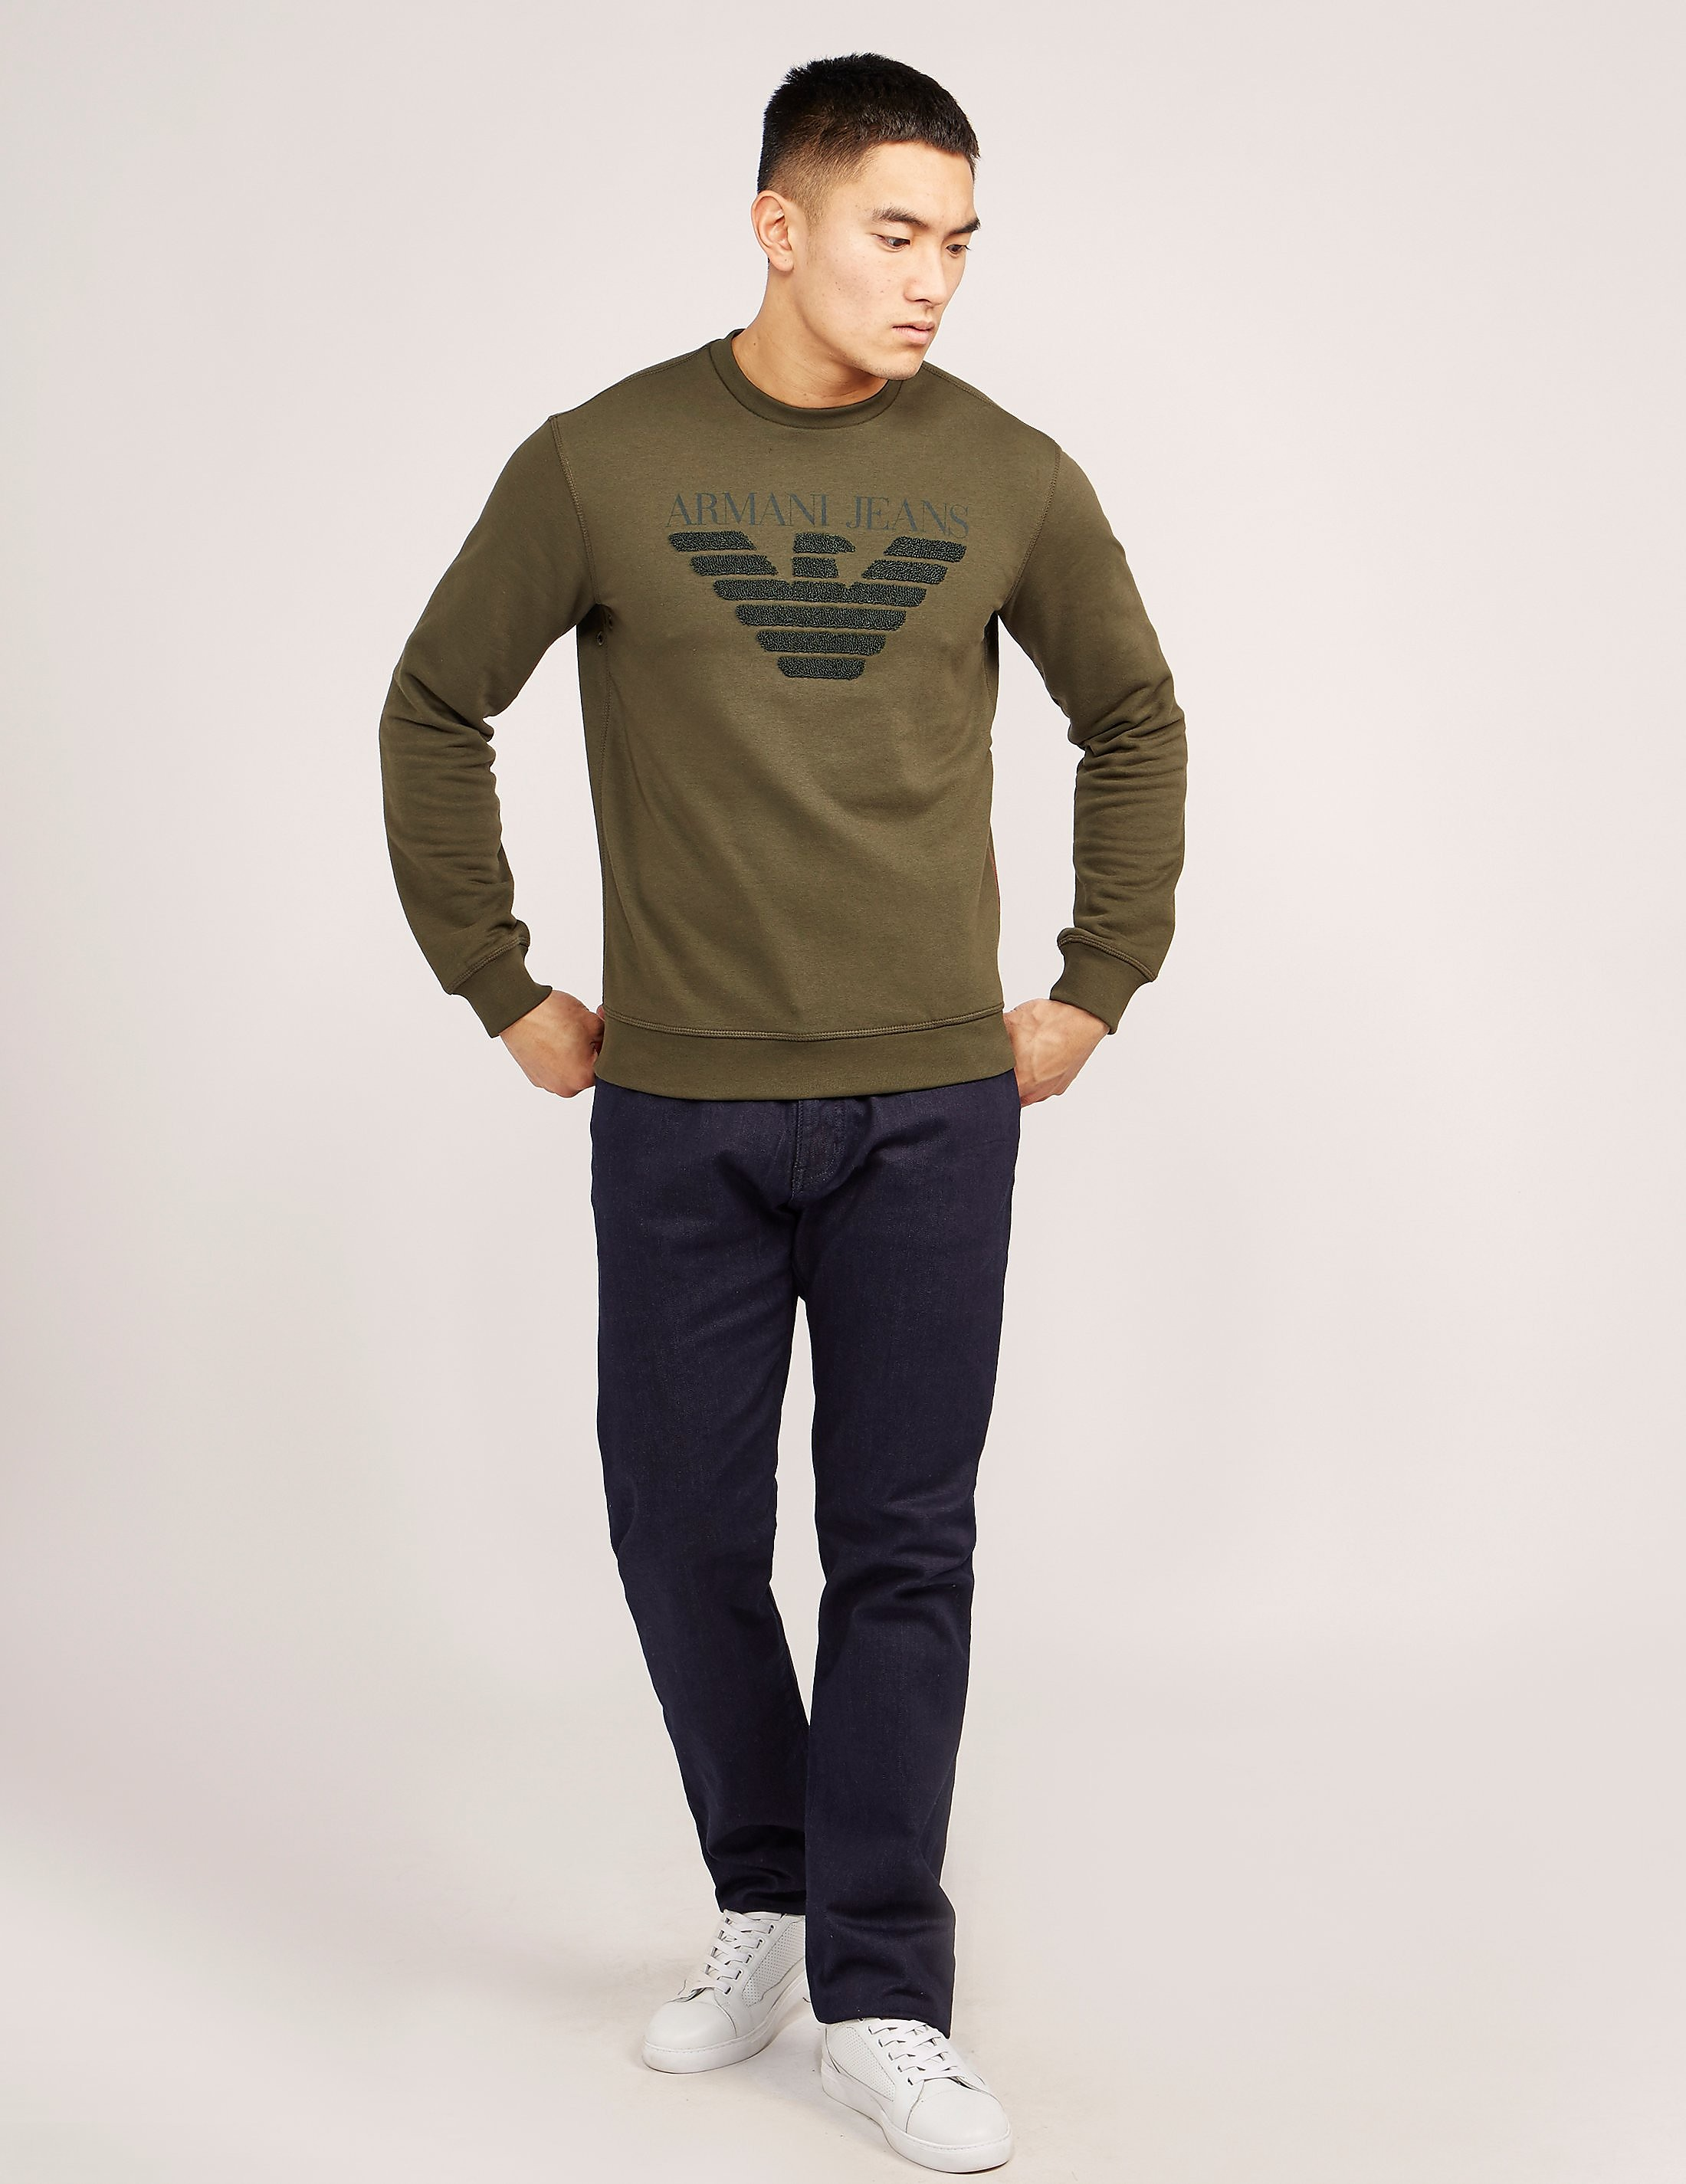 Armani Jeans Embroidered Eagle Sweatshirt